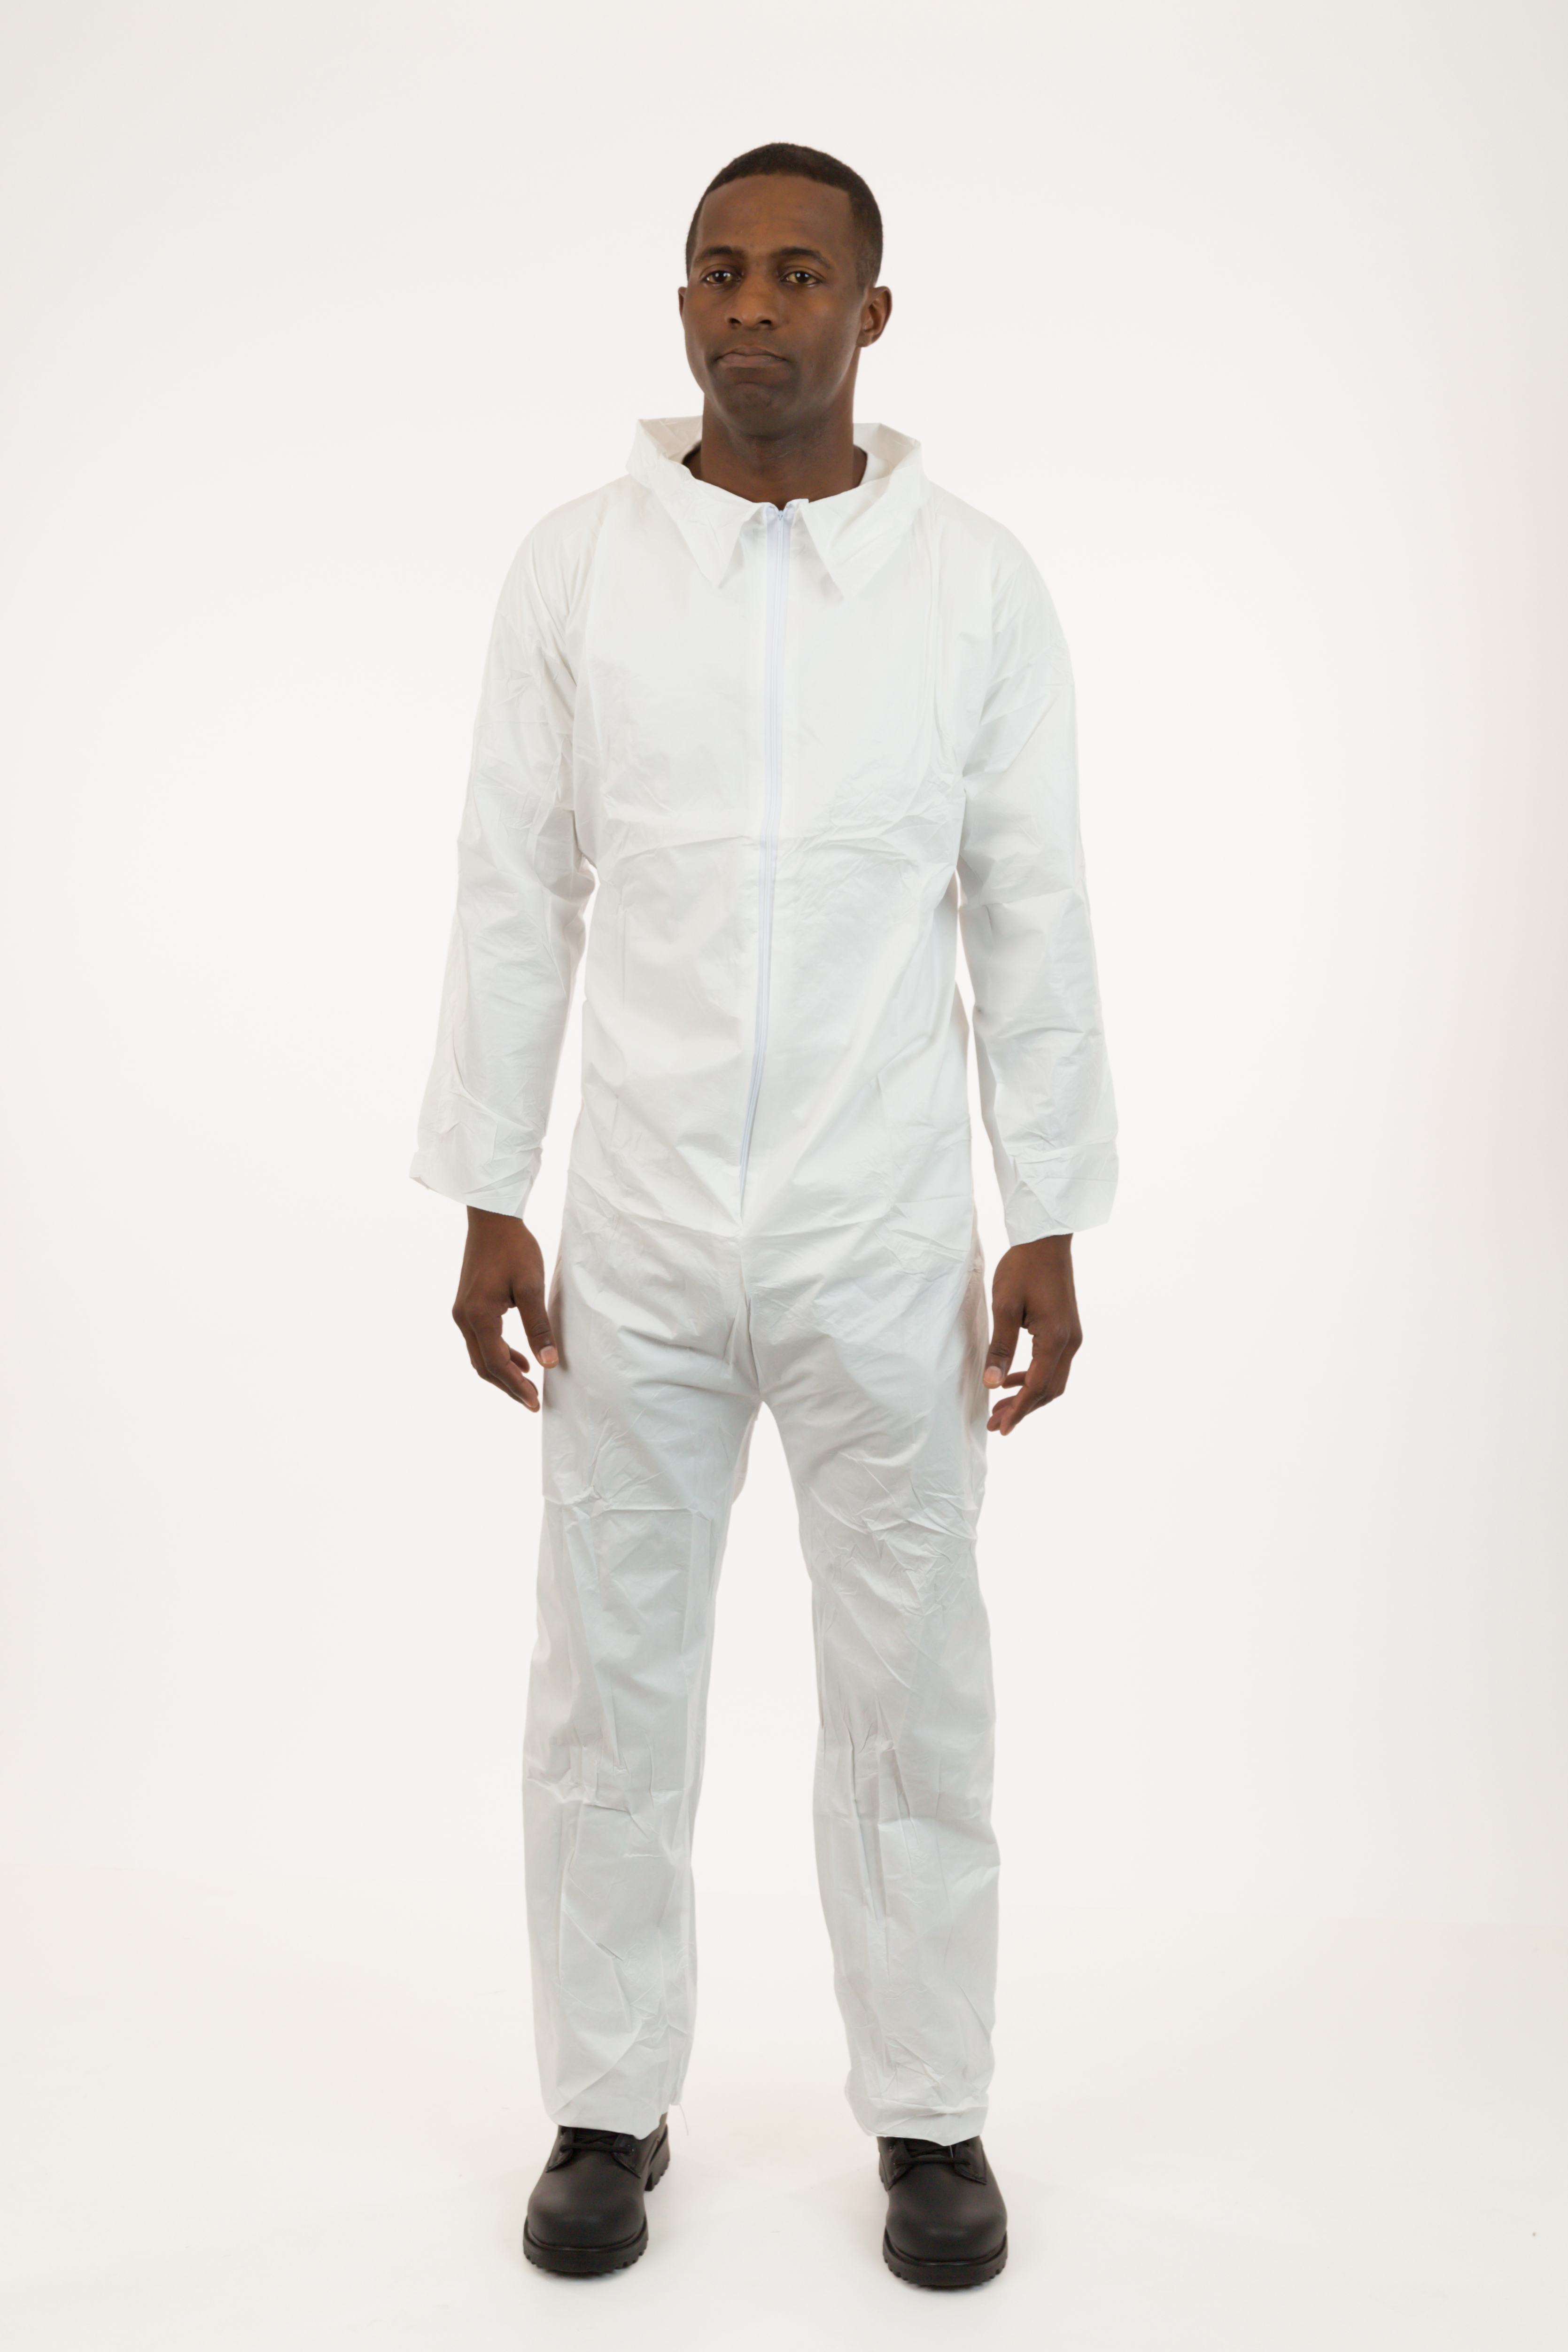 International Enviroguard - Heavyweight SMS Coverall, White, with Collar, Elastic Wrists, Open Ankle